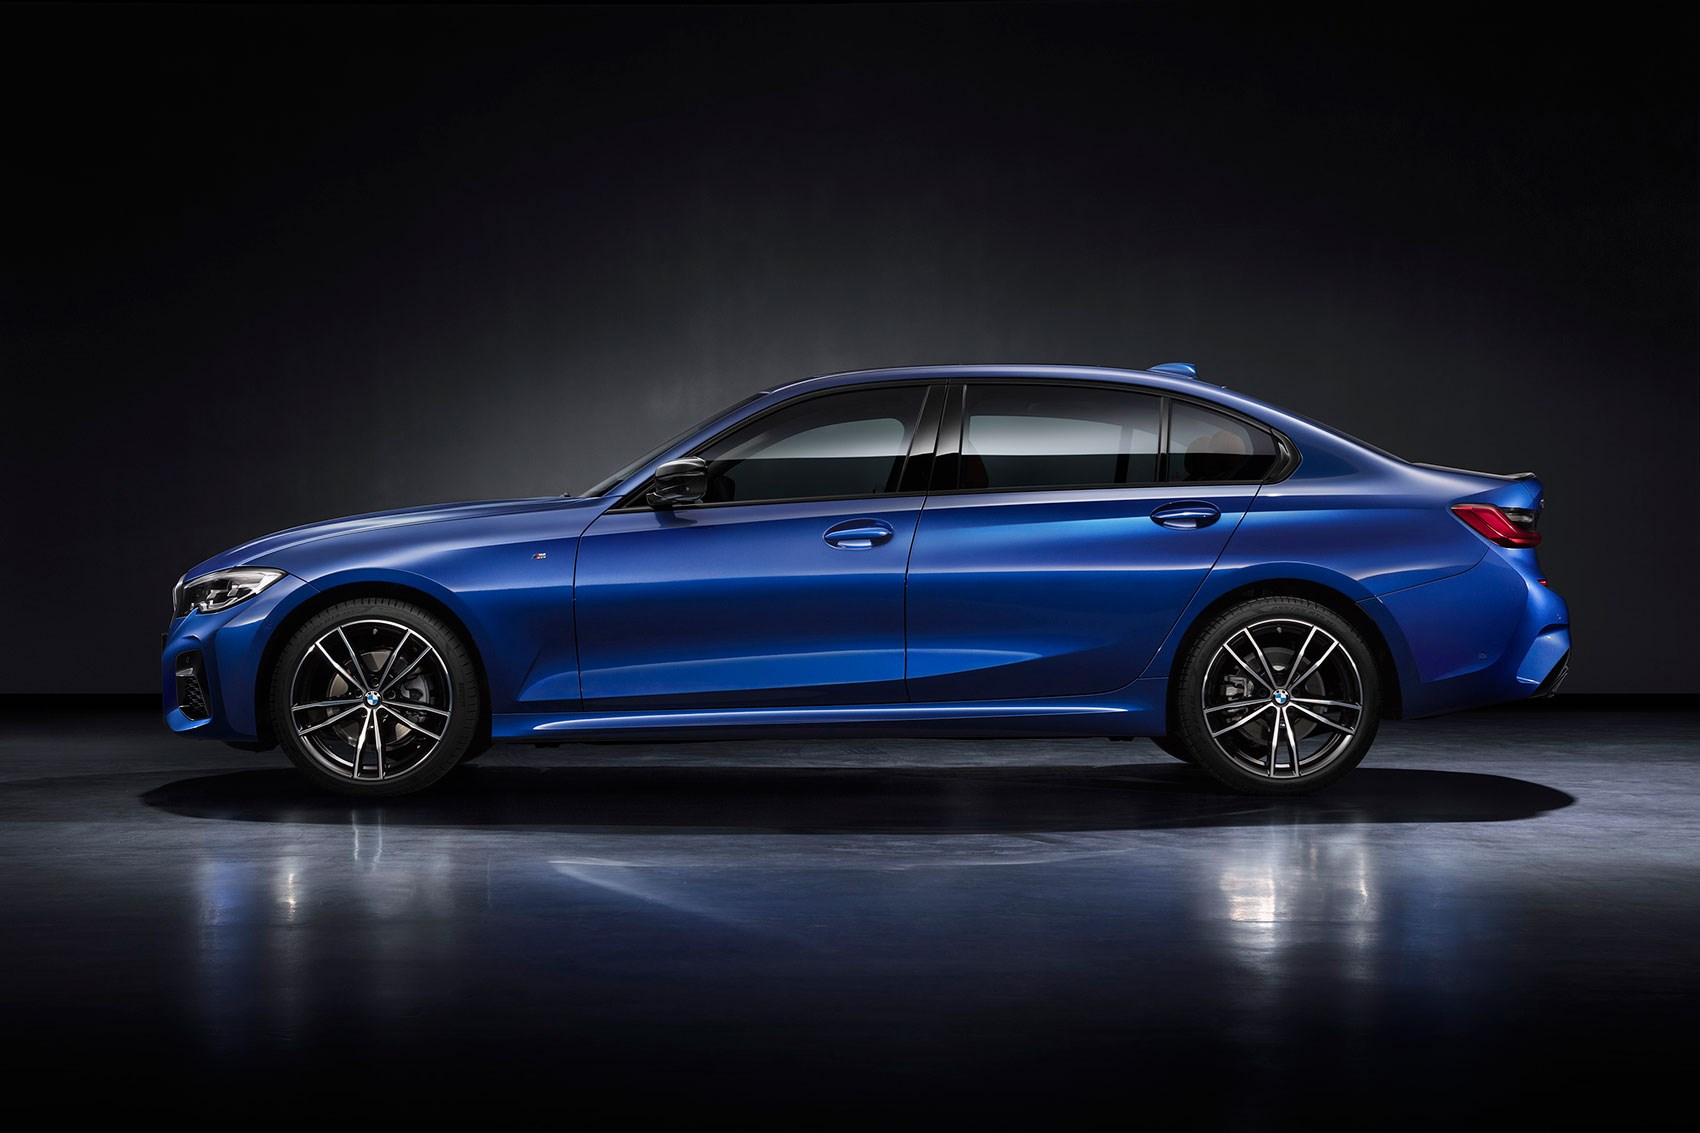 BMW 3 Series Gran Limousine - Upcoming Car Launches in India for January 2021